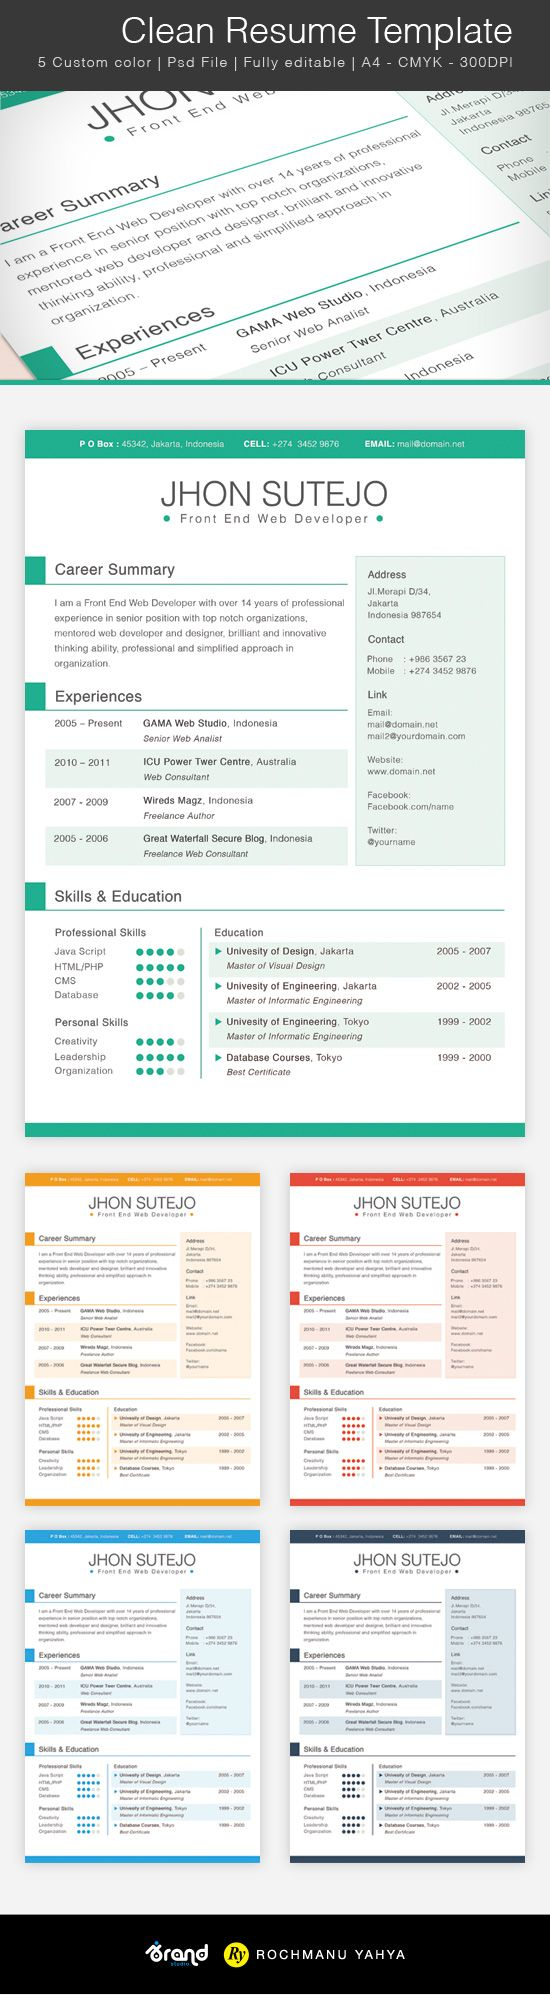 free clean resume template 5 colors pinterest template free